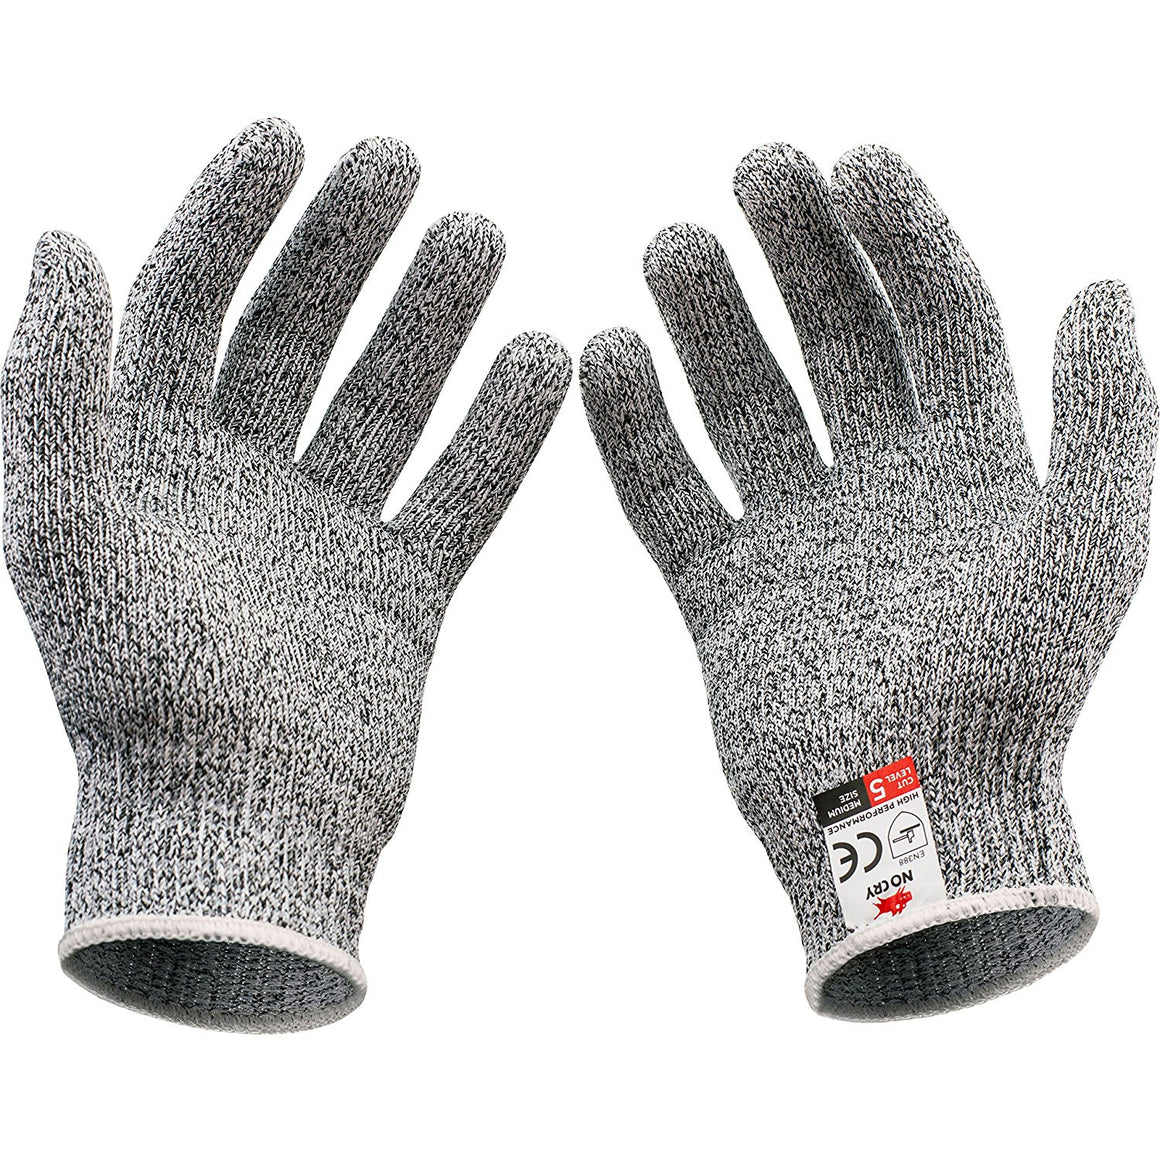 Cut Resistant Gloves - High Performance Level 5 Protection